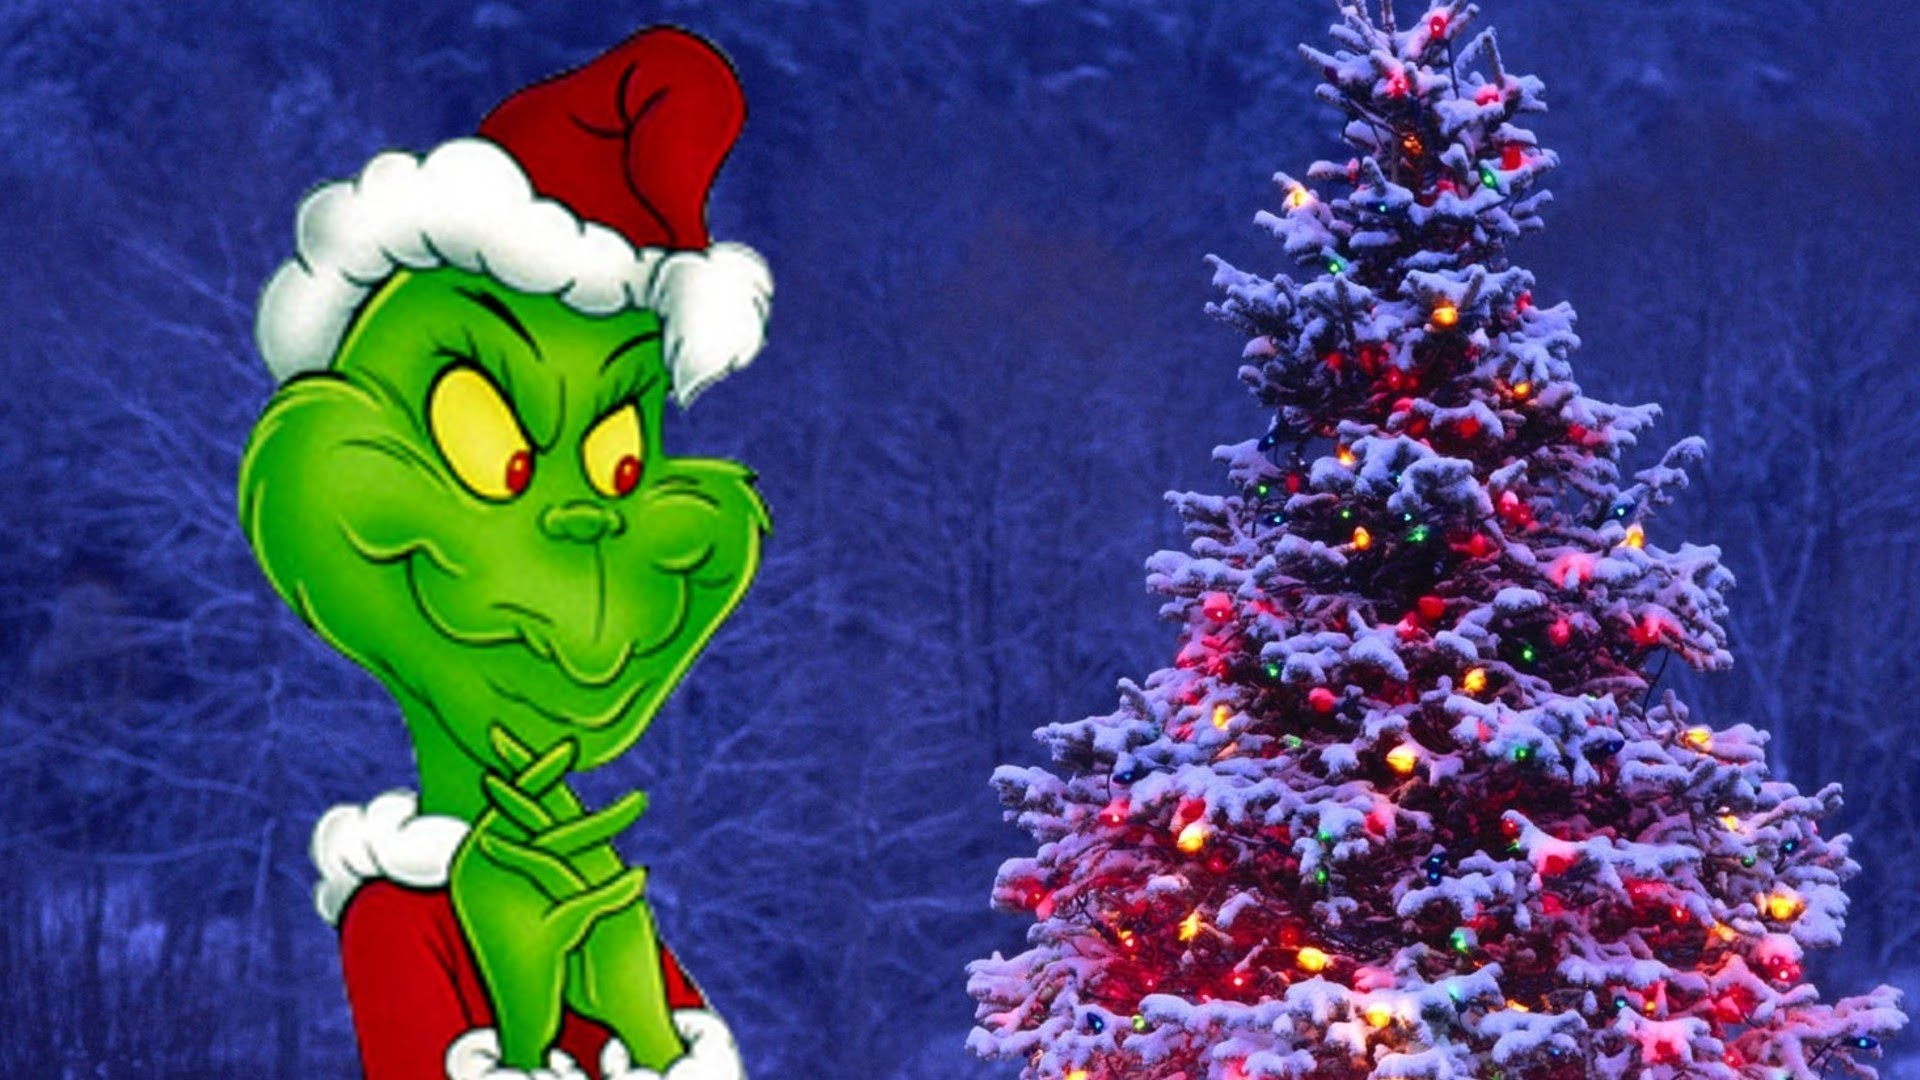 Grinch Wallpaper Pictures (68+ images)